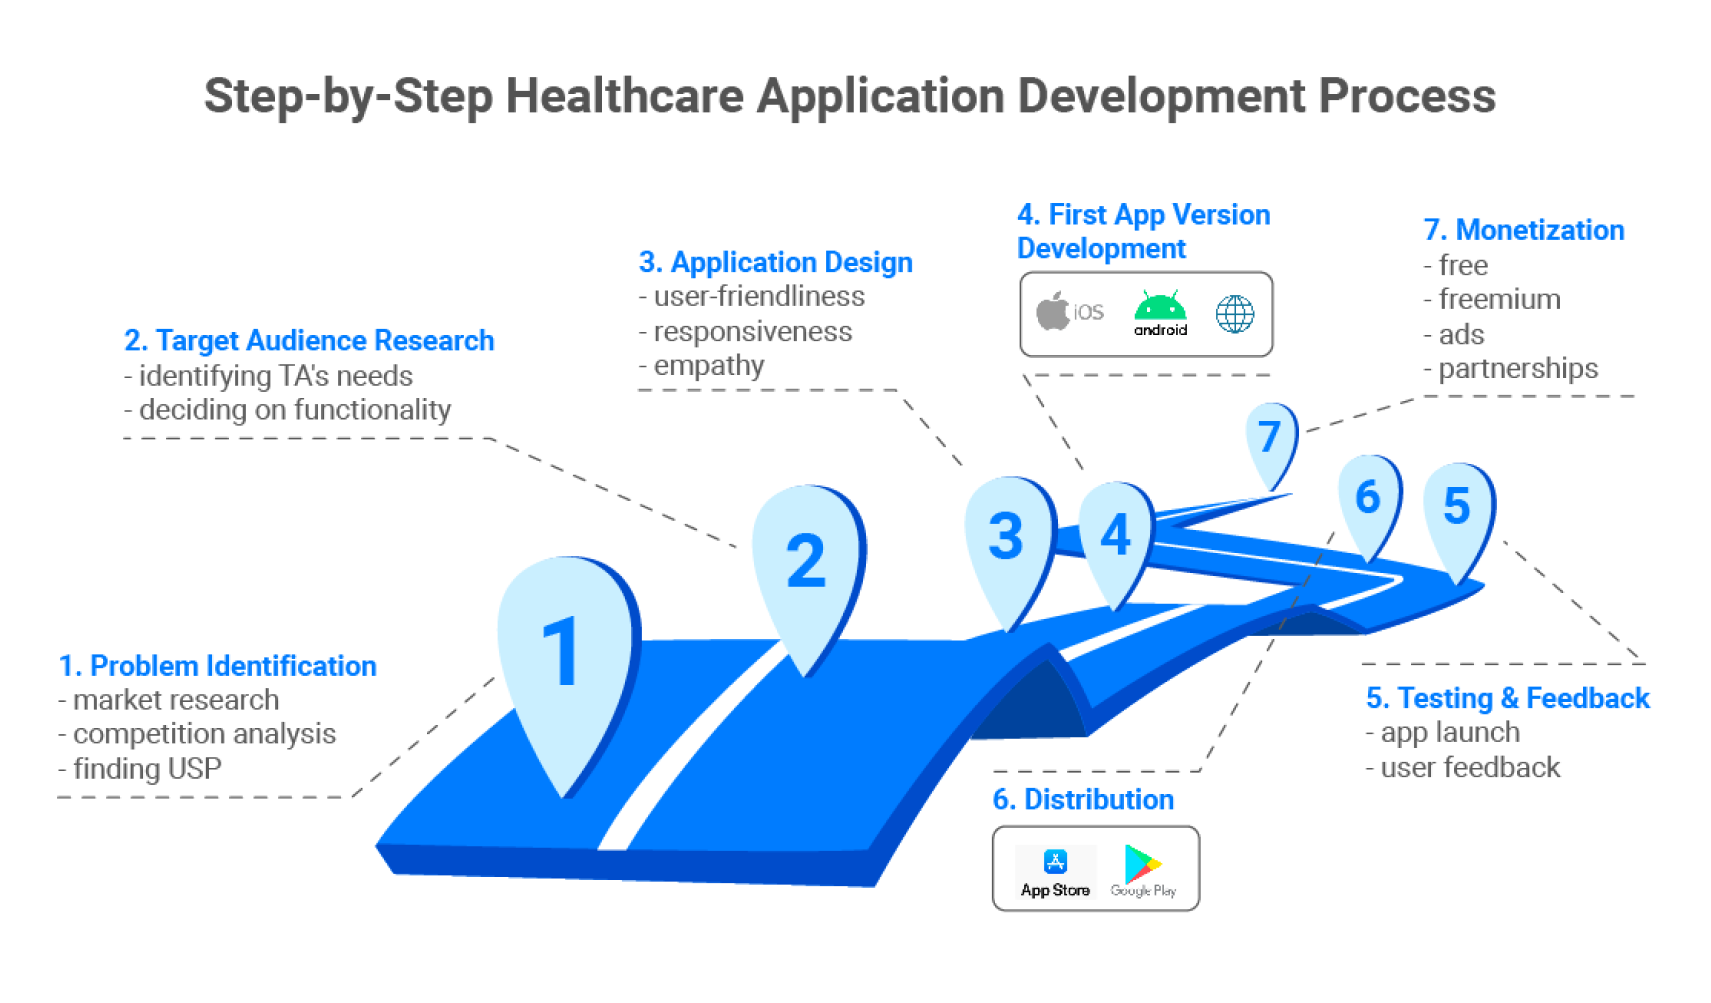 Step-by-Step Healthcare Application Development Process